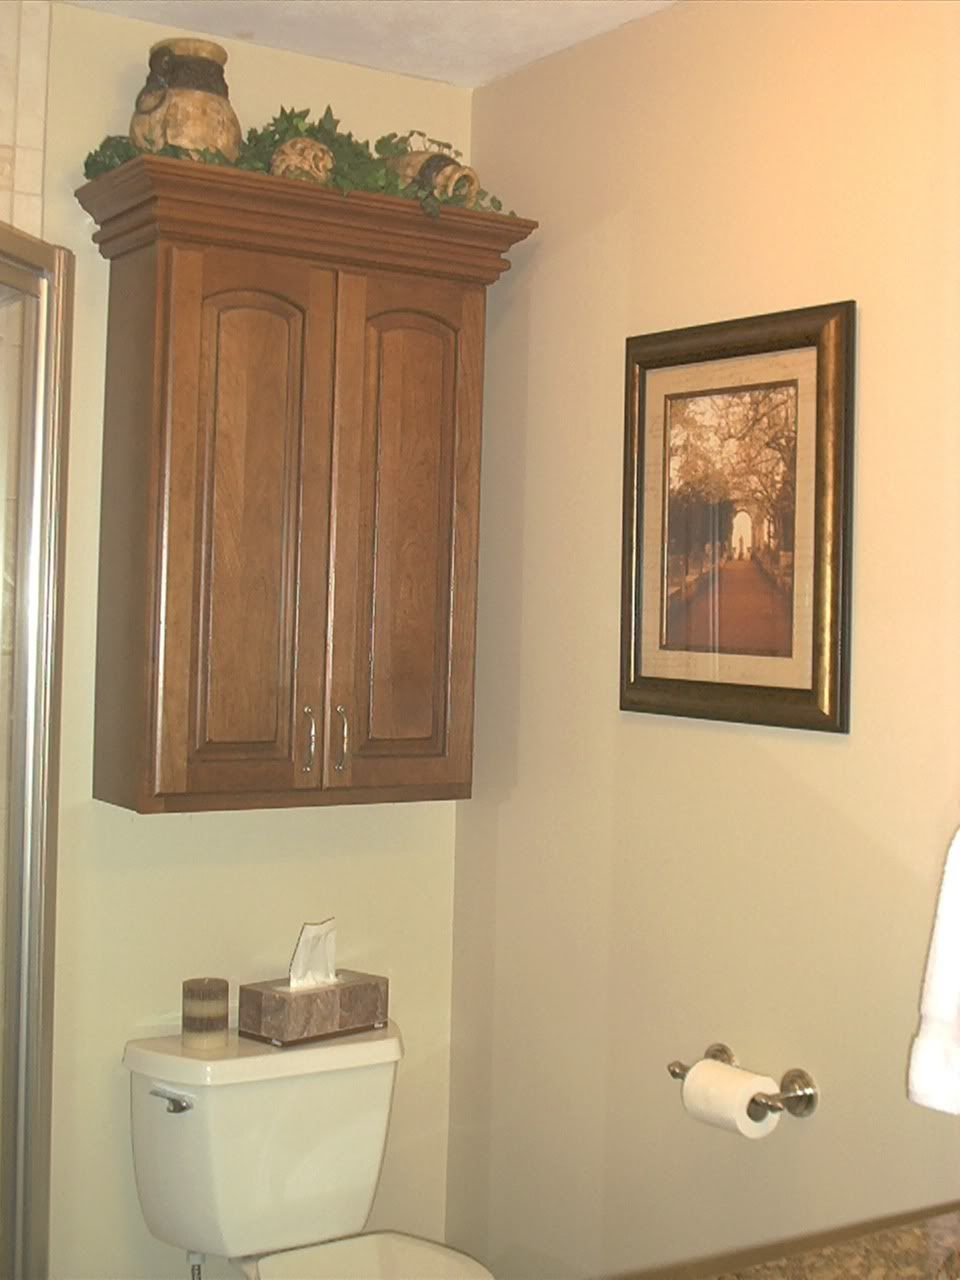 Bathroom Storage Cabinets Over Toilet Wall Cabinet Above In Water Closet Room Home